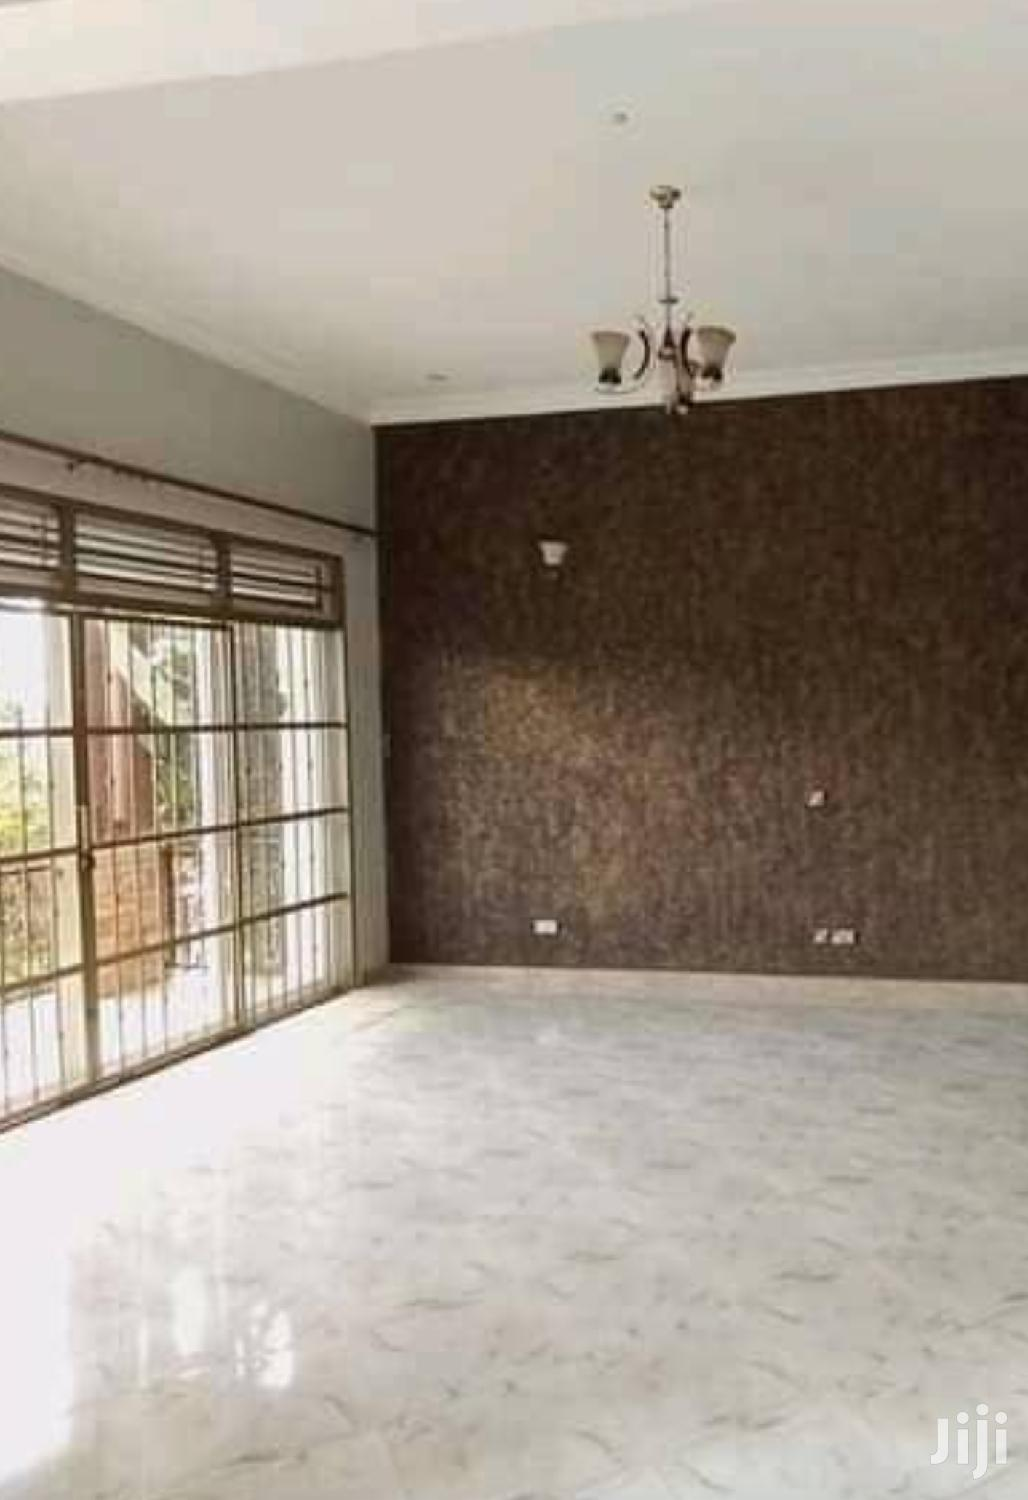 Mutungo 4 Bedrooms Duplex Stand Alone For Rent | Houses & Apartments For Rent for sale in Kampala, Central Region, Uganda